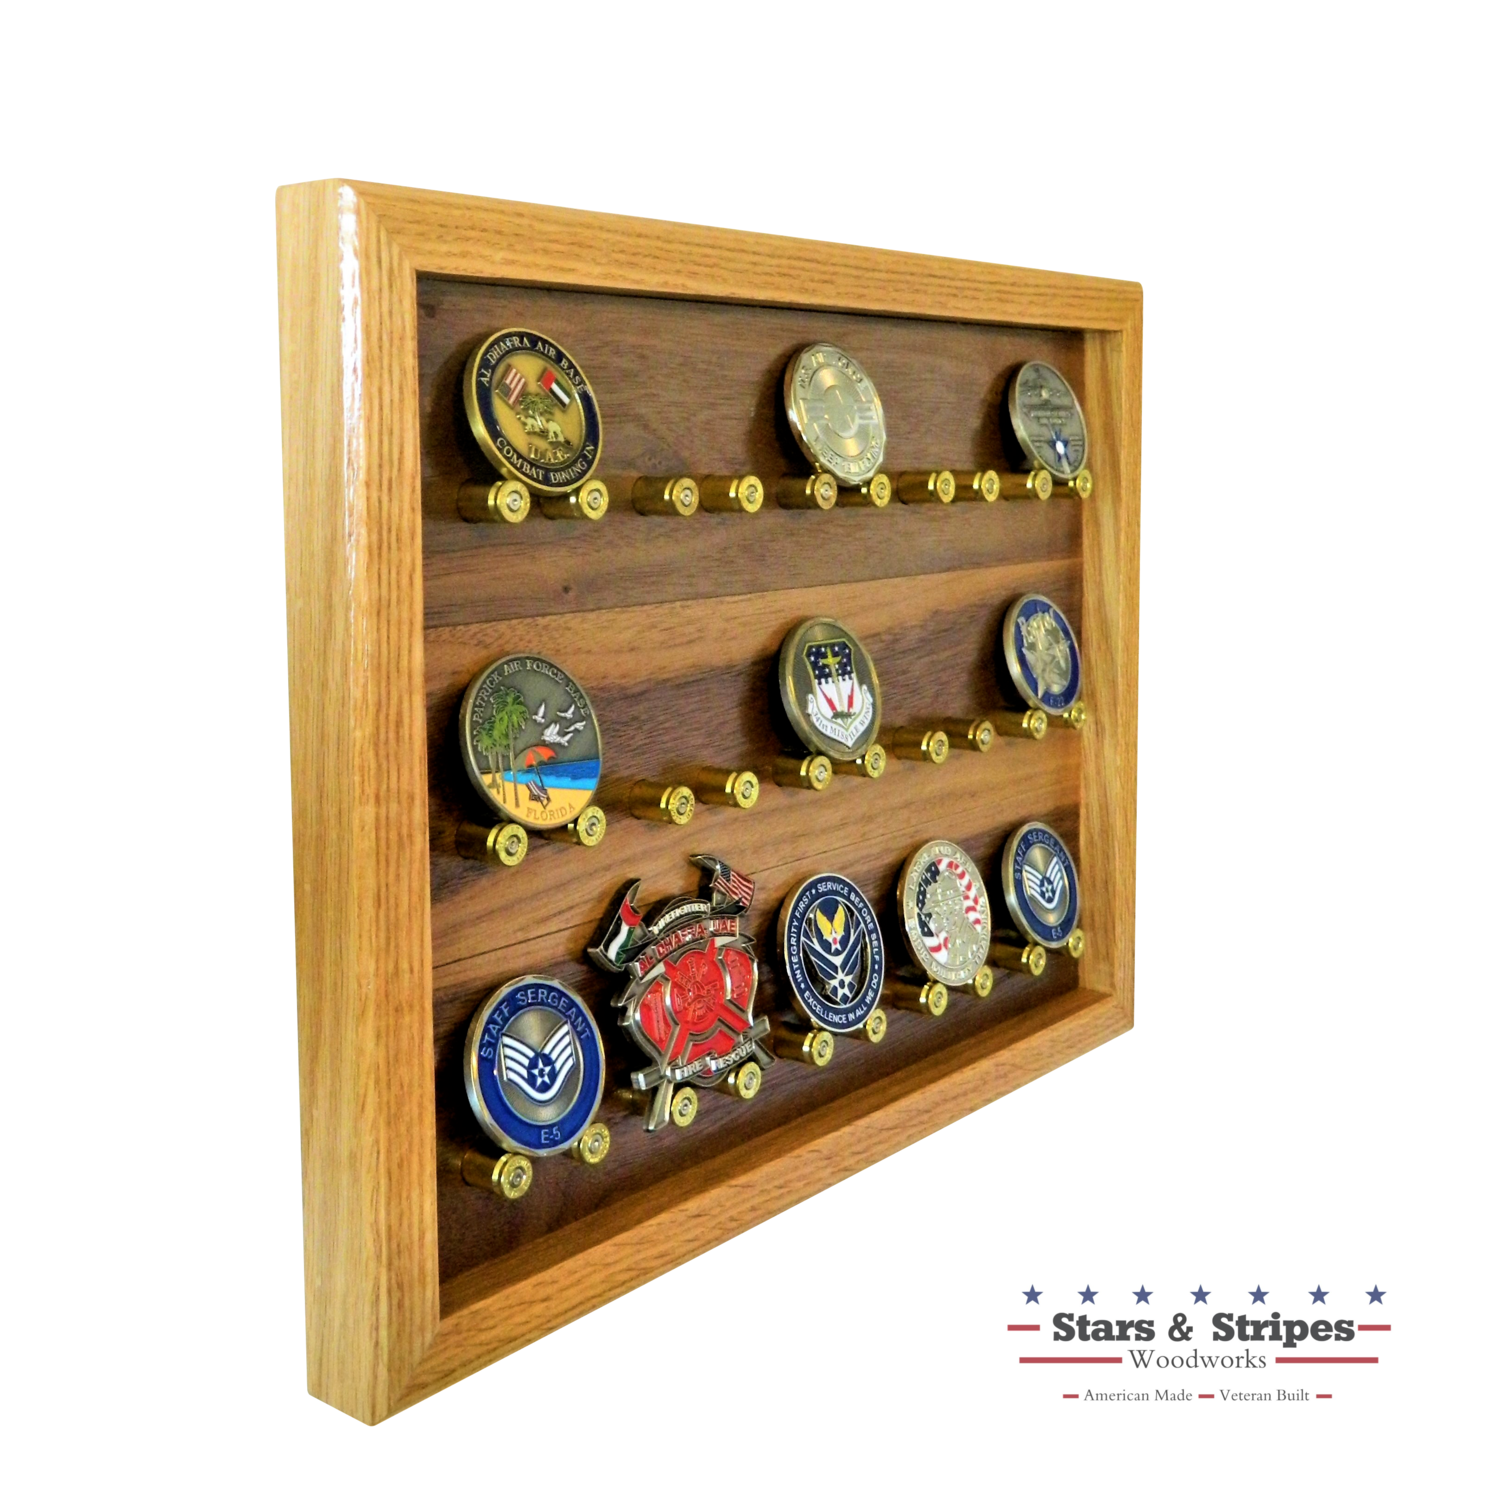 The ORIGINAL 15 Count Challenge Coin Rack Display with 9mm Brass Bullet Casings